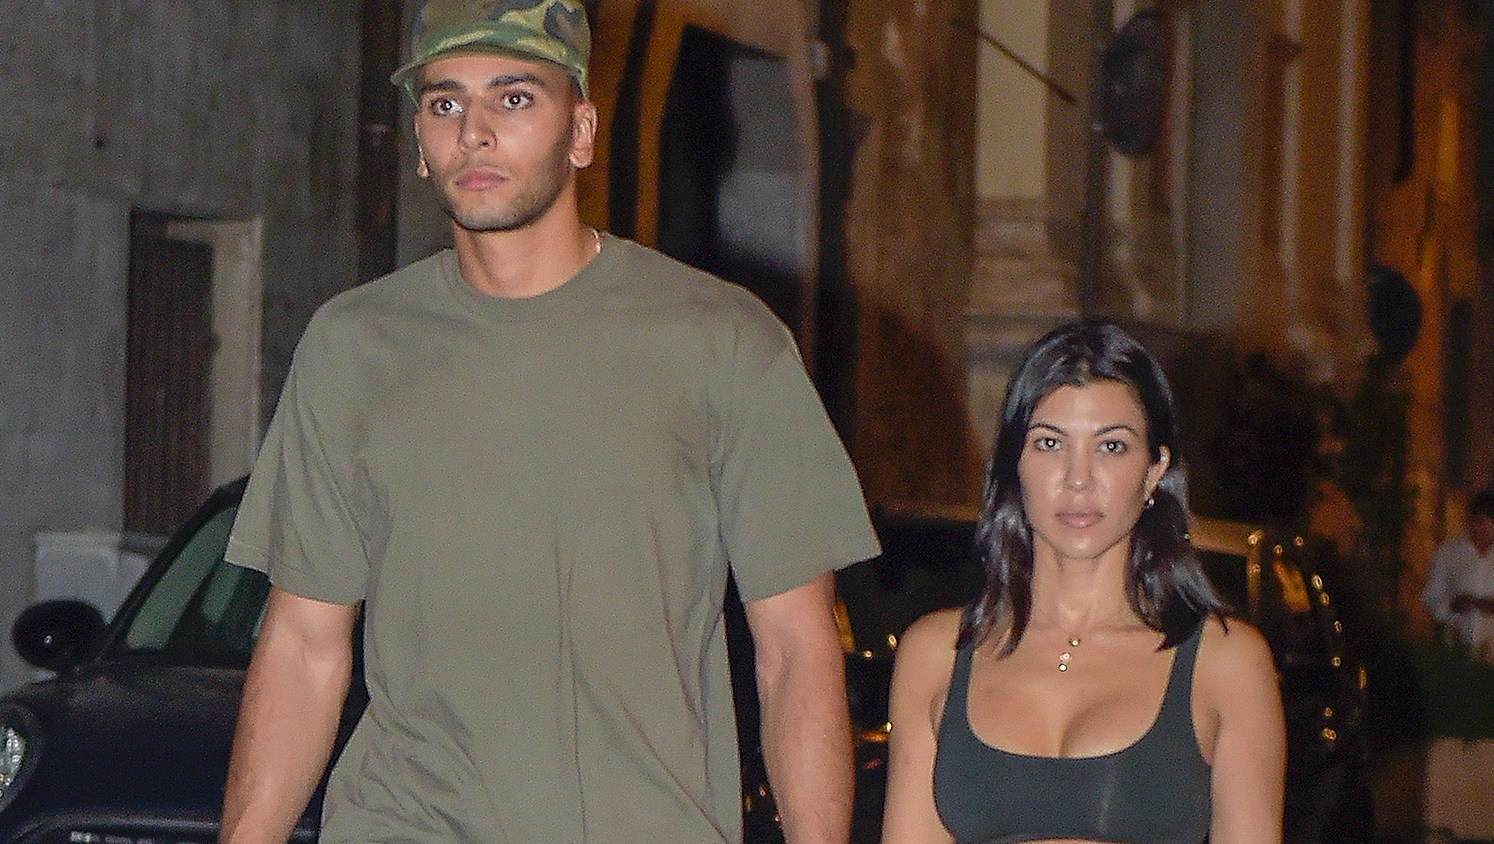 Kourtney Kardashian, Younes Bendjima, Rome, Capri, Vacation